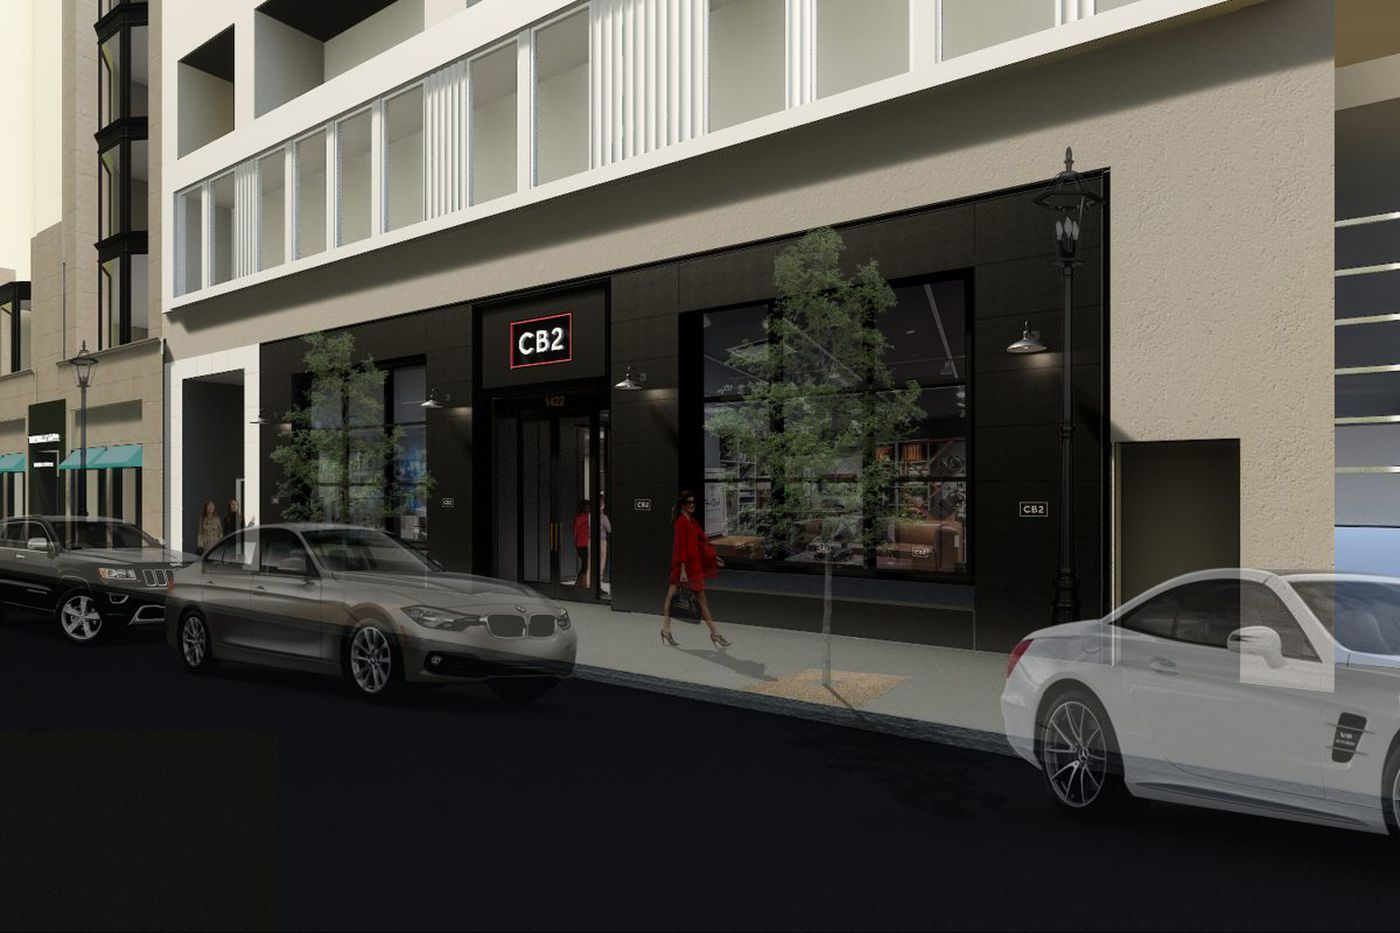 Walnut gets another high-end furniture maker: CB2 opens Feb. 2 near Thos. Moser